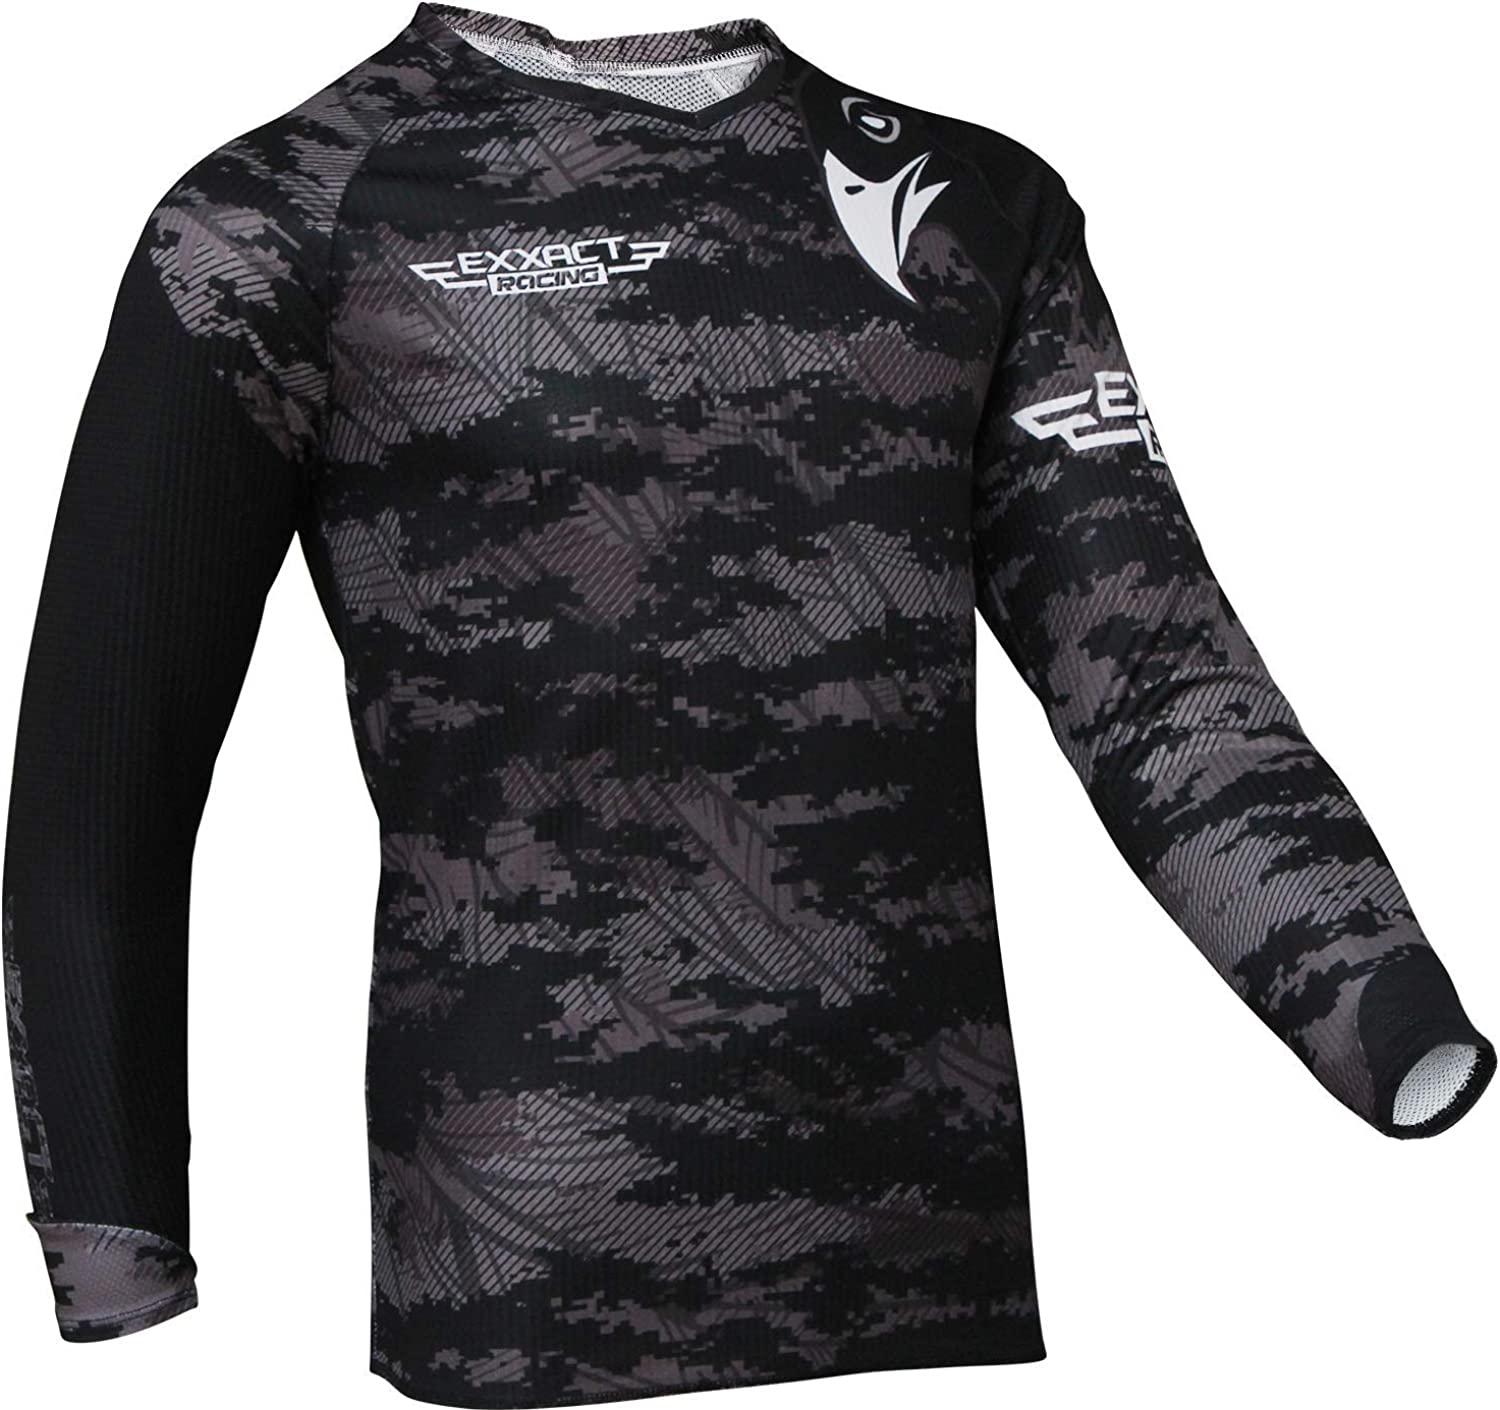 Exxact Sports Motocross Jersey with Camouflage Colors Offroad Dirt Bike